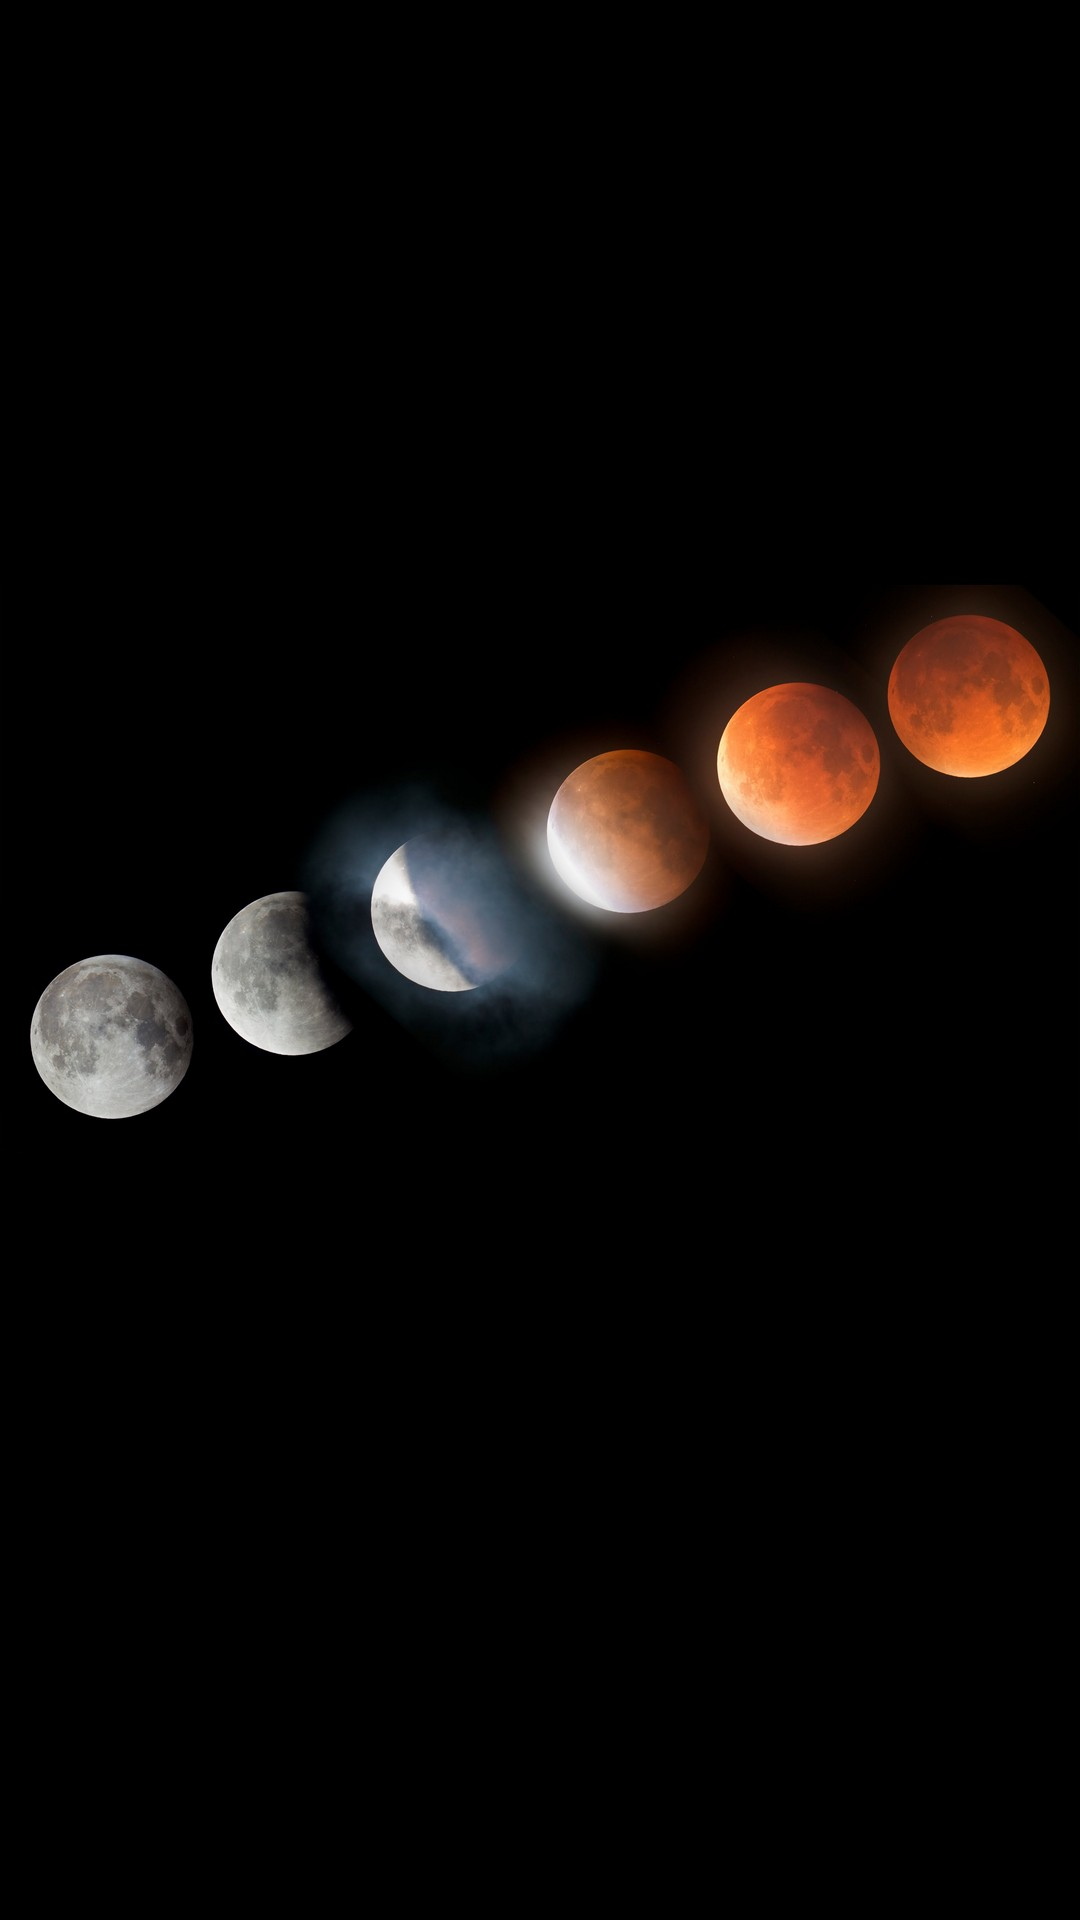 iPhone X Wallpaper Super Blood Moon Lunar Eclipse 2020 3D iPhone 1080x1920